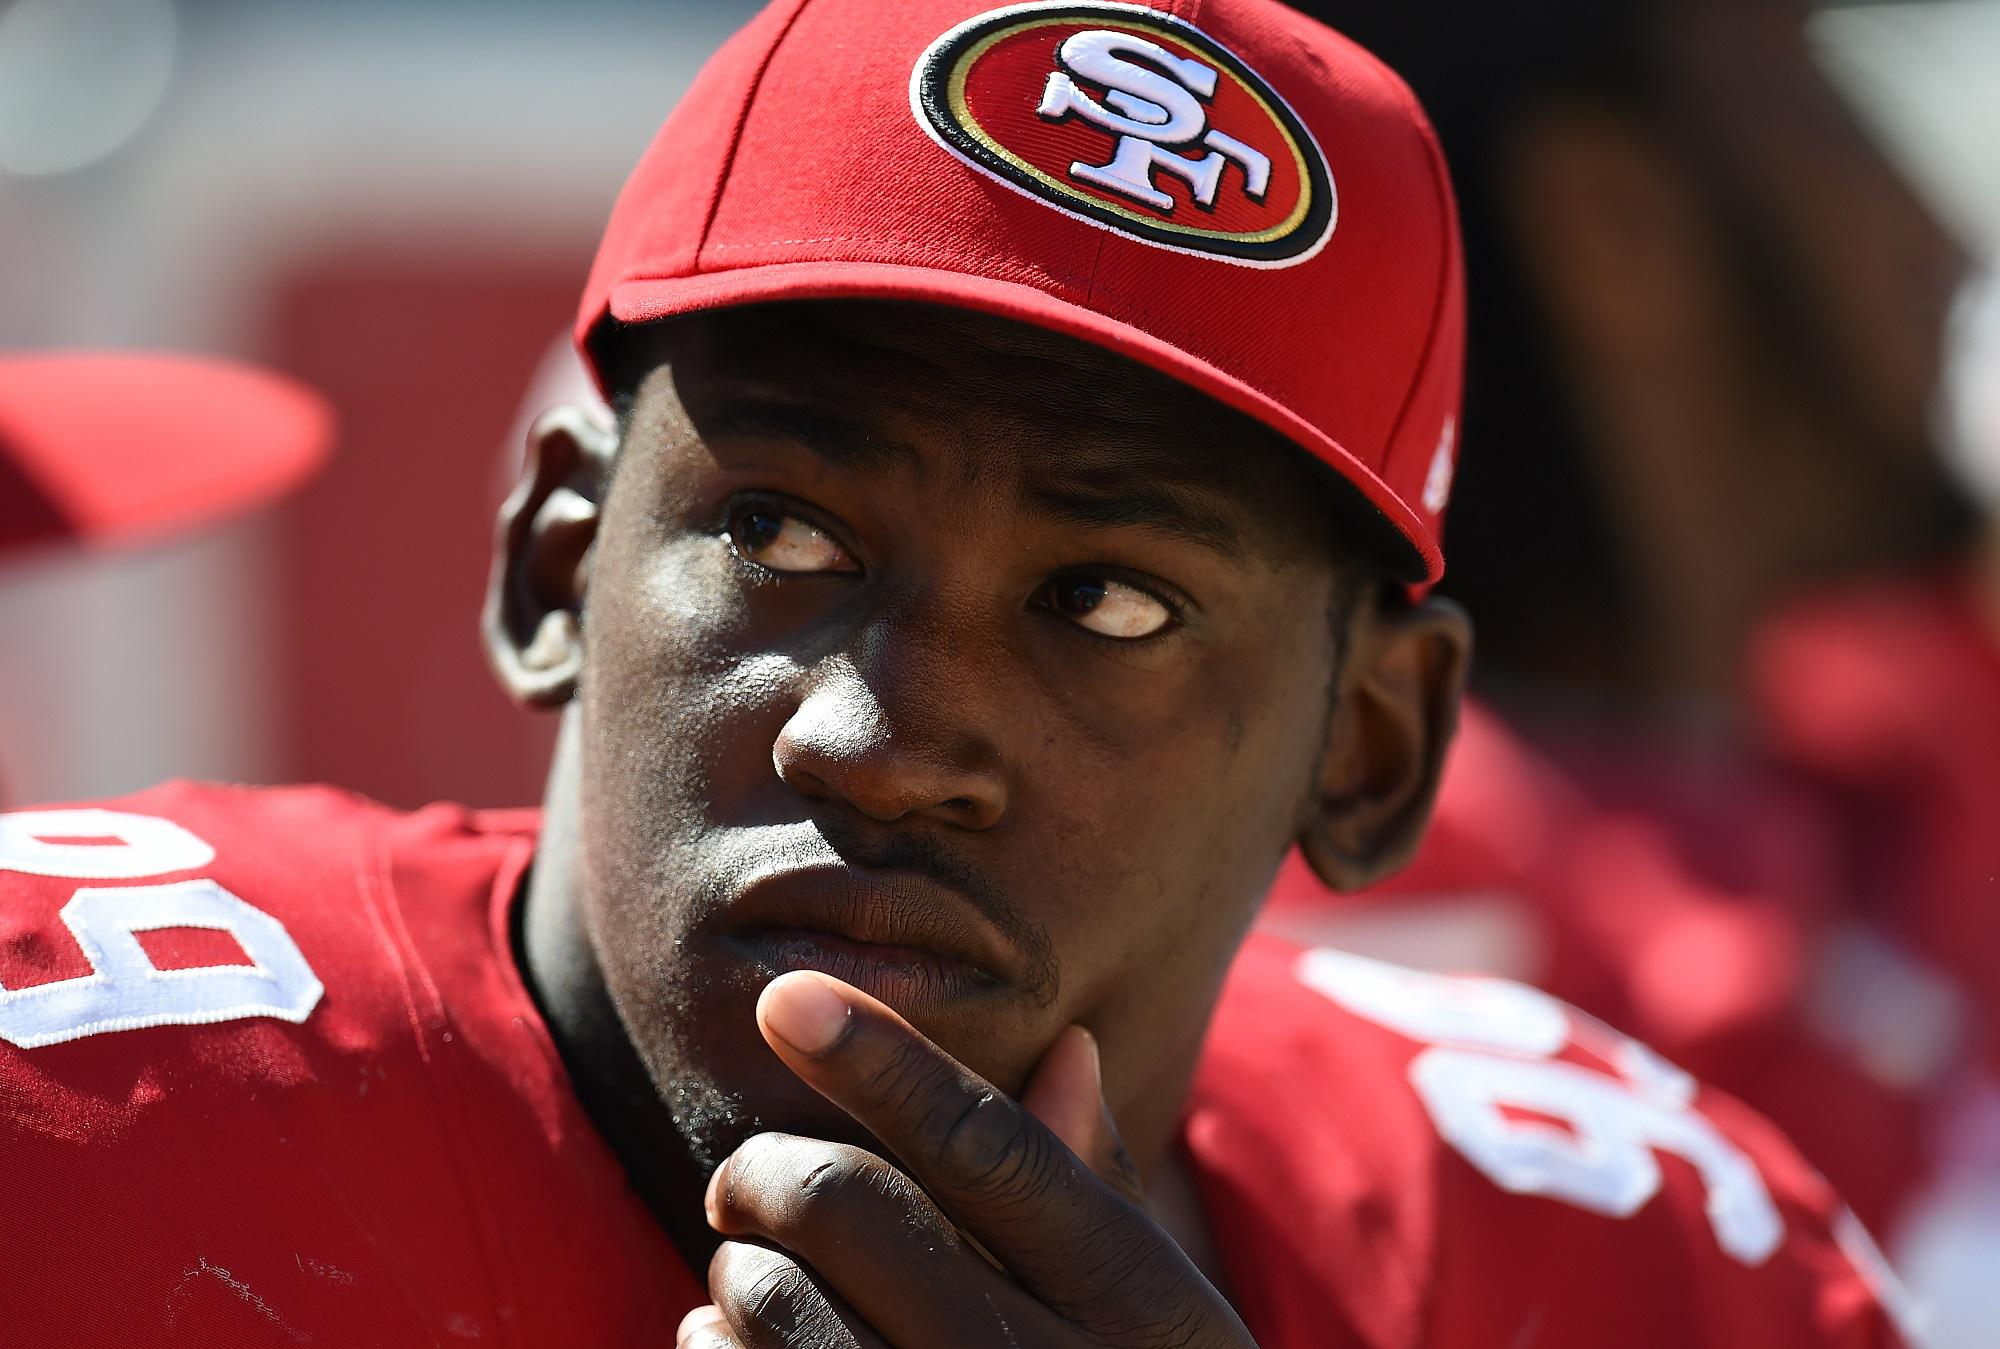 Aldon Smith Busted for DUI